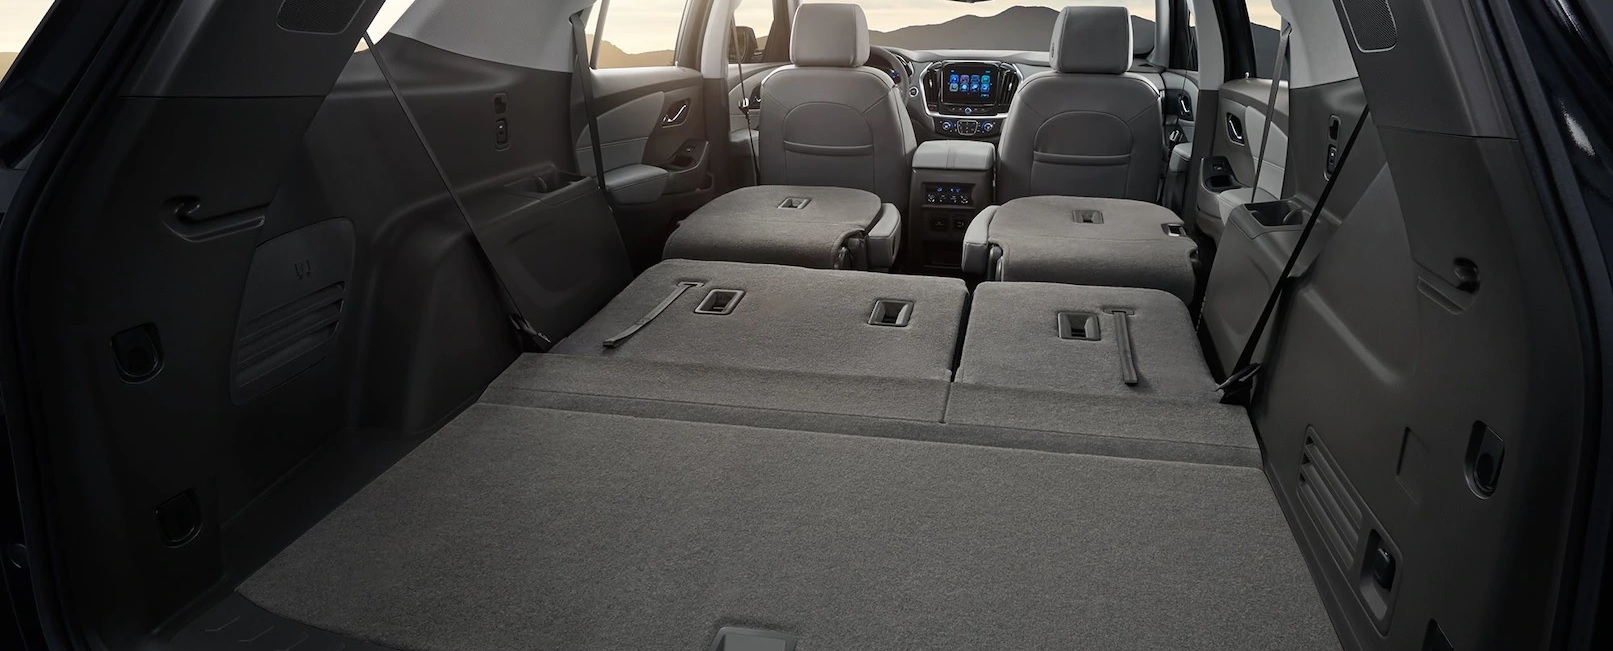 The Cavernous Cargo Area of the 2020 Traverse